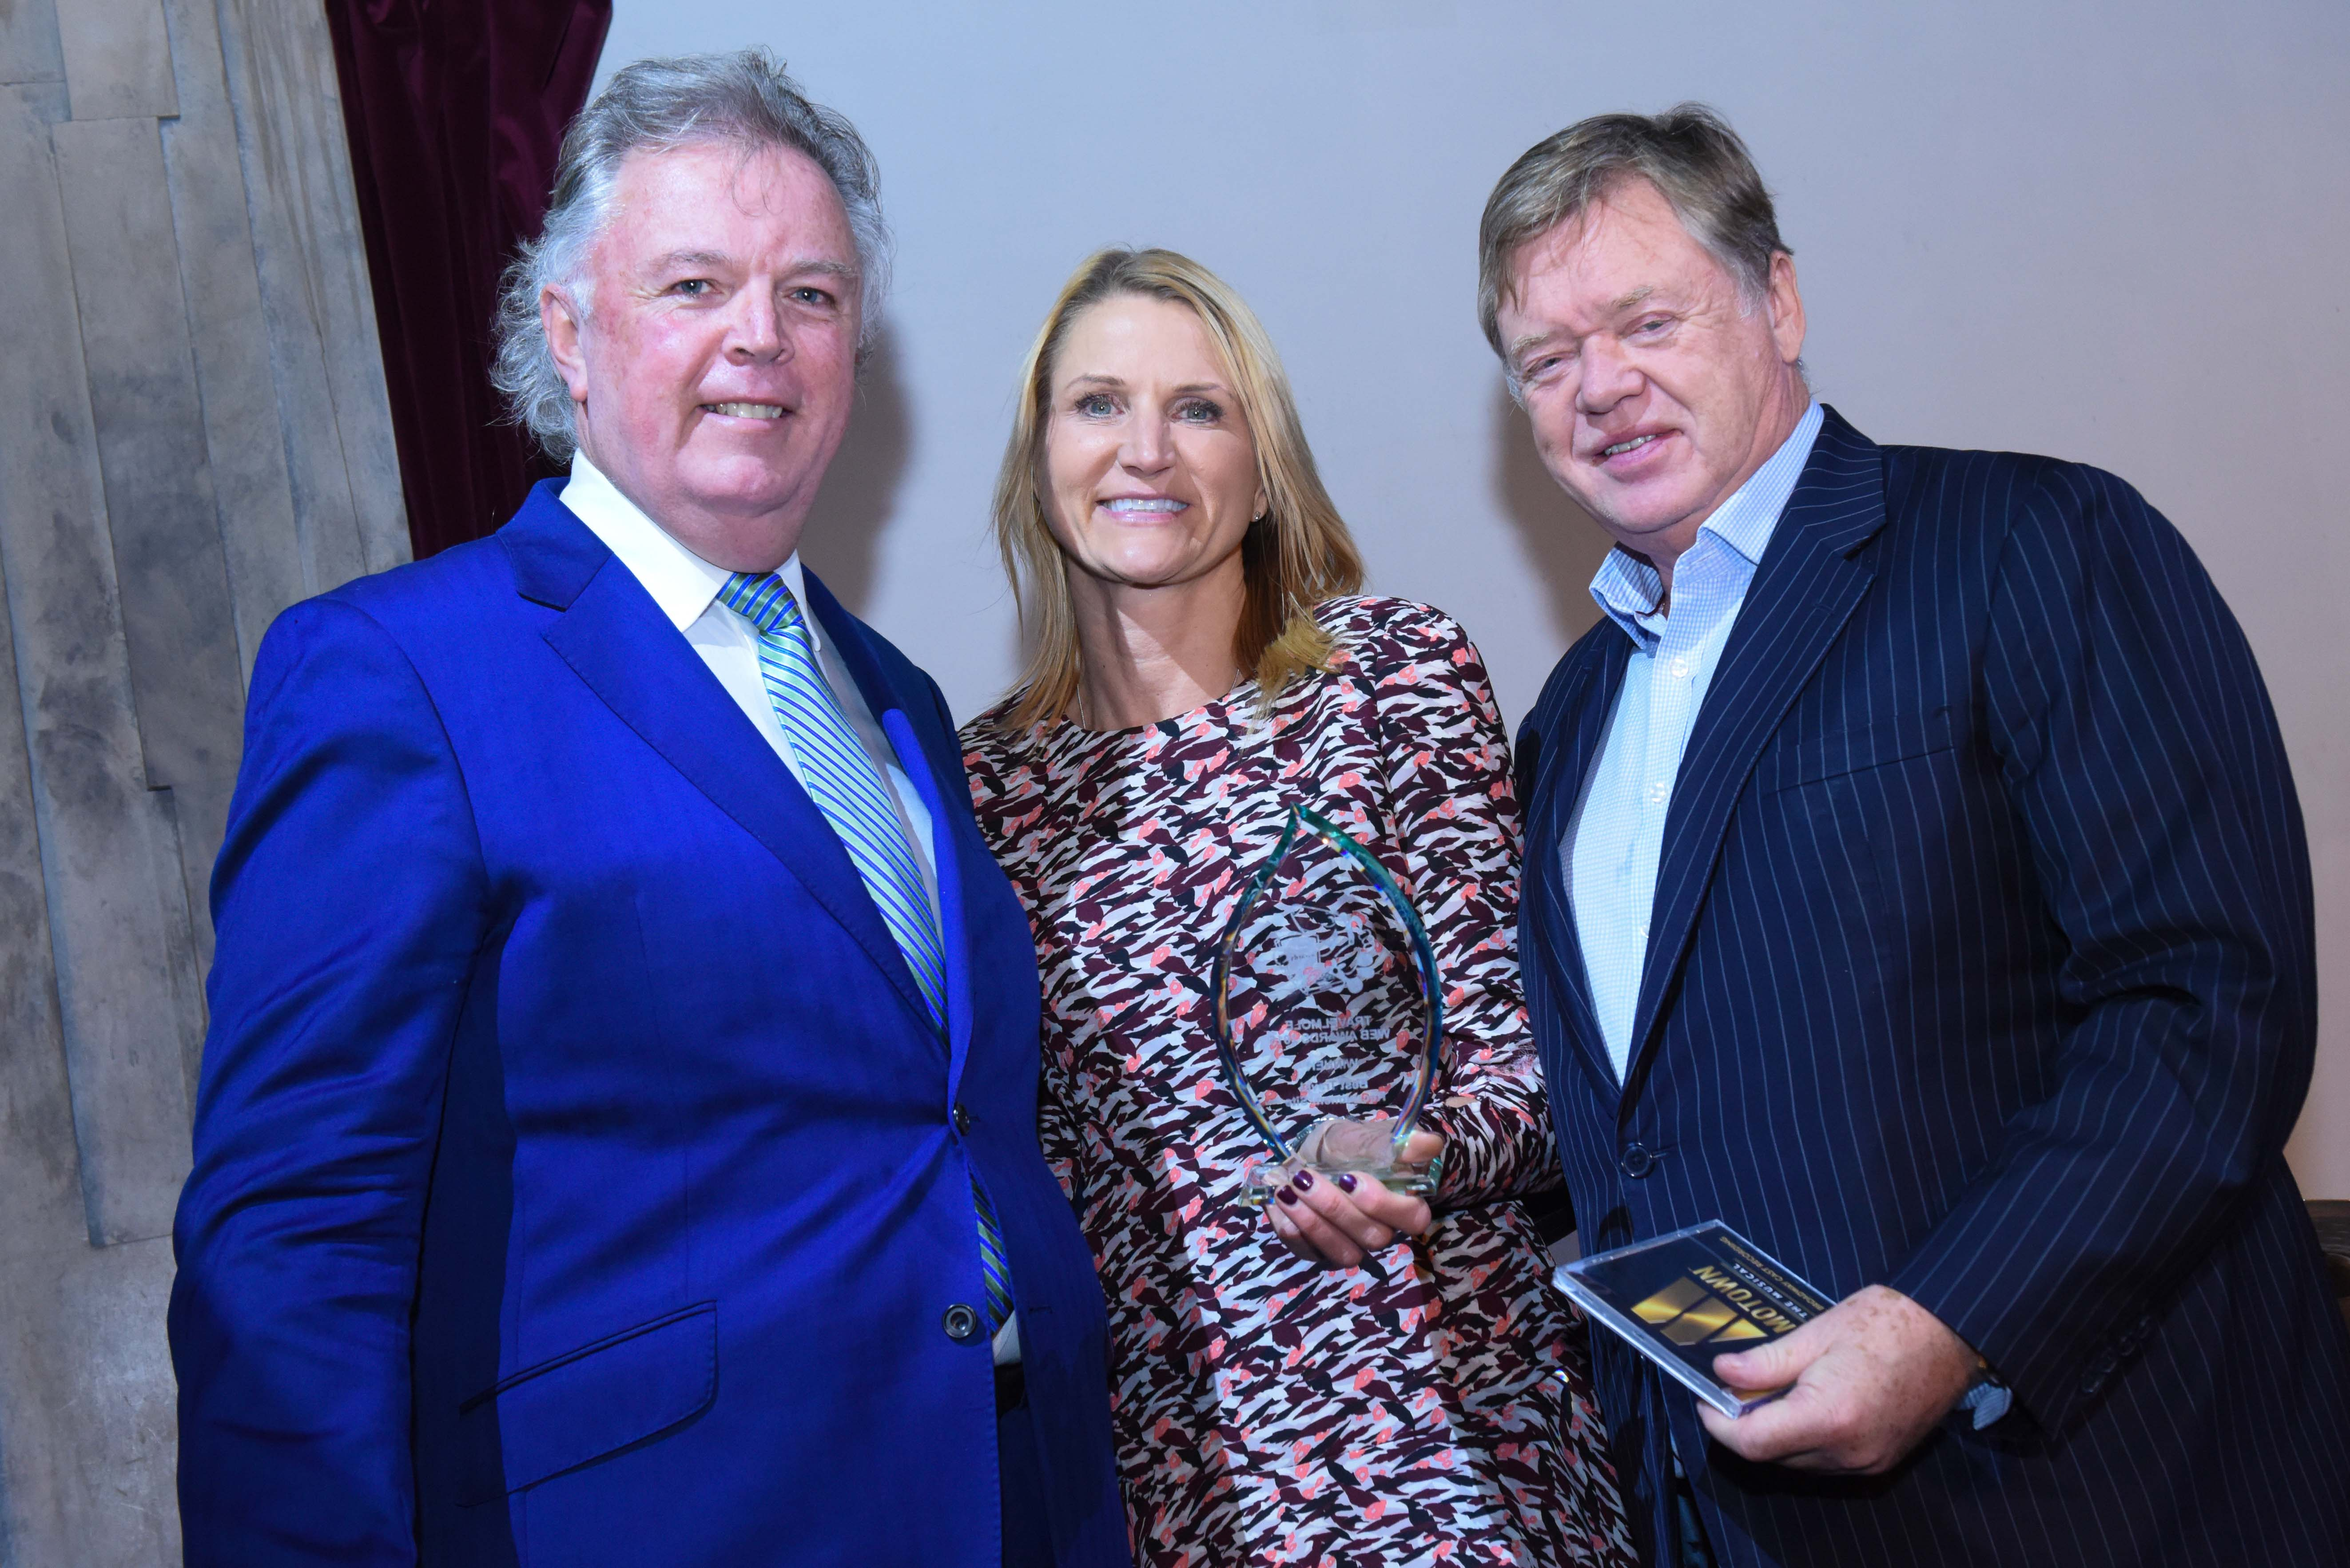 TravelMole UK Web Awards 2015 - Image 1